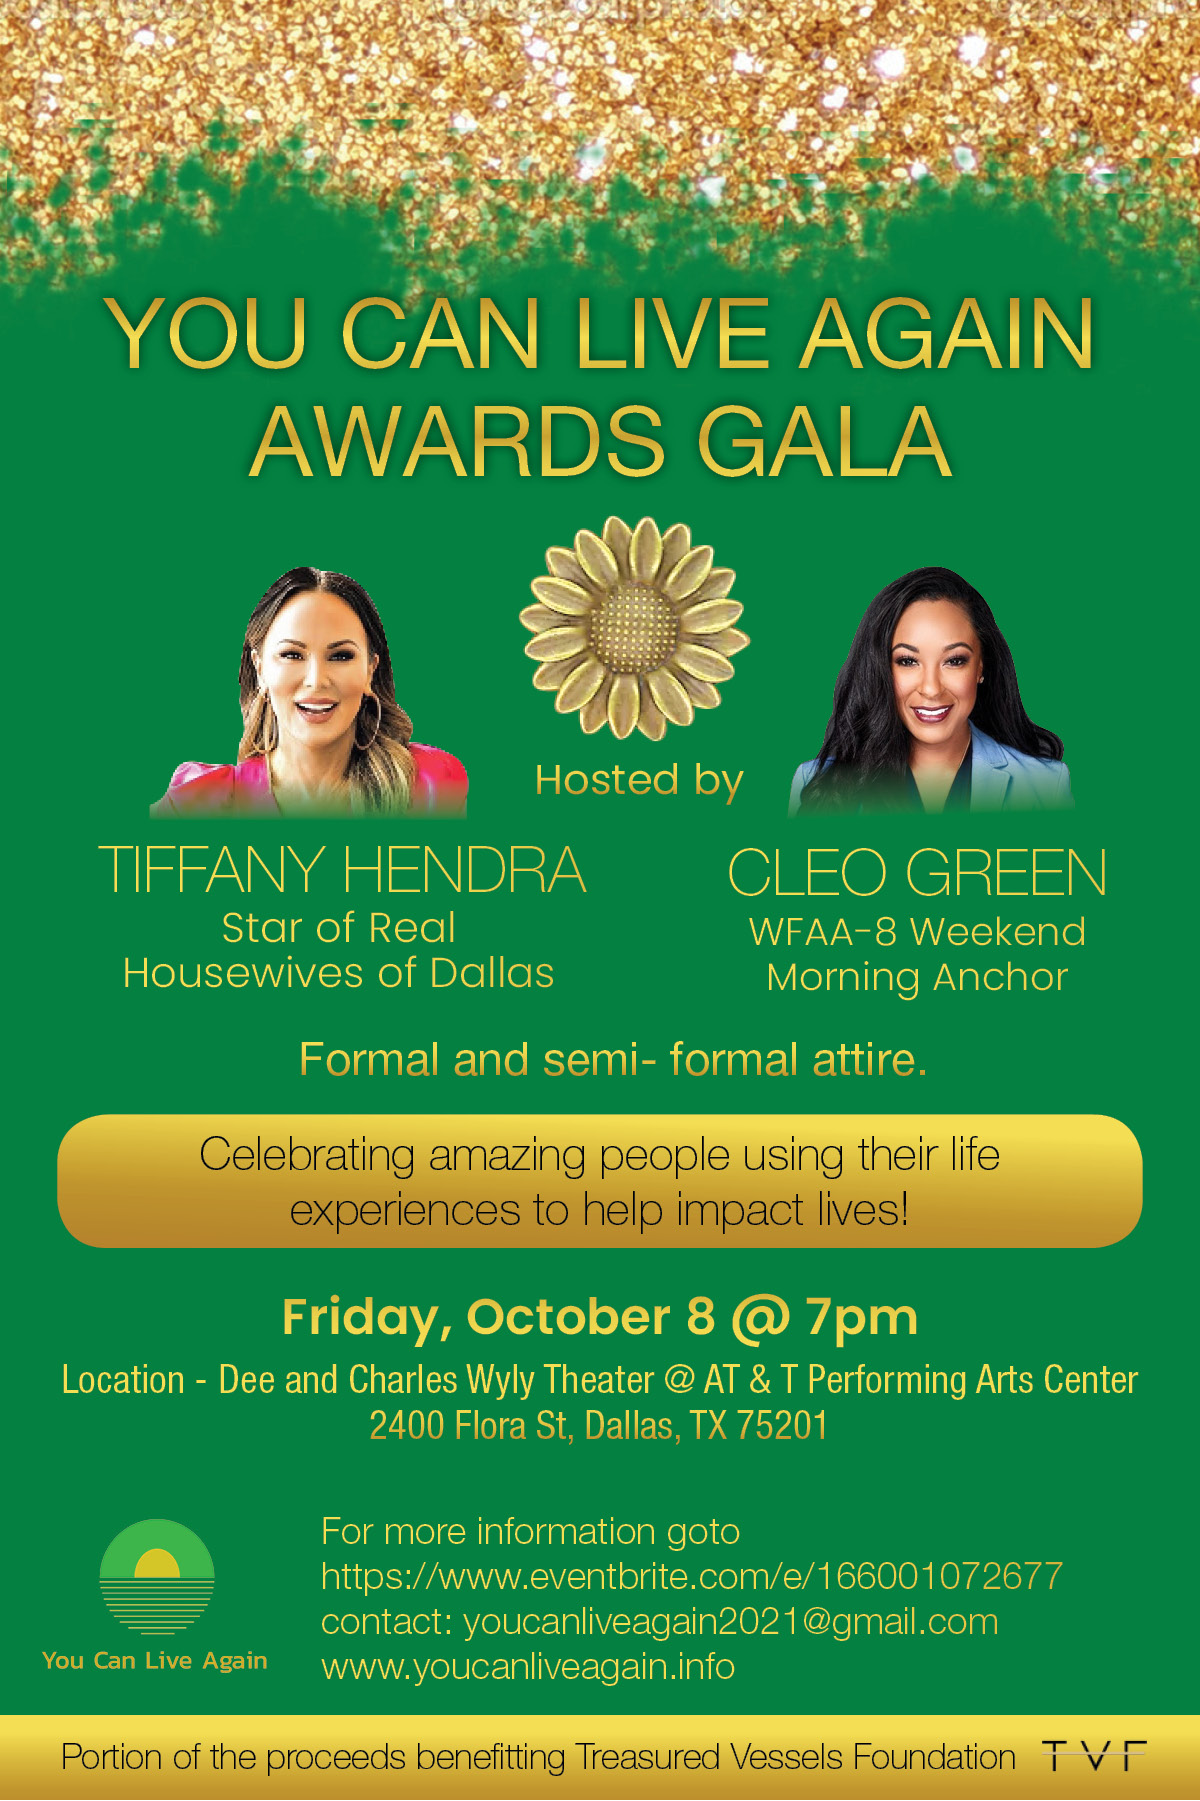 You Can Live Again Awards Gala 2021 Will Be Co-hosted by Tiffany Hendra of 'Real Housewives of Dallas'